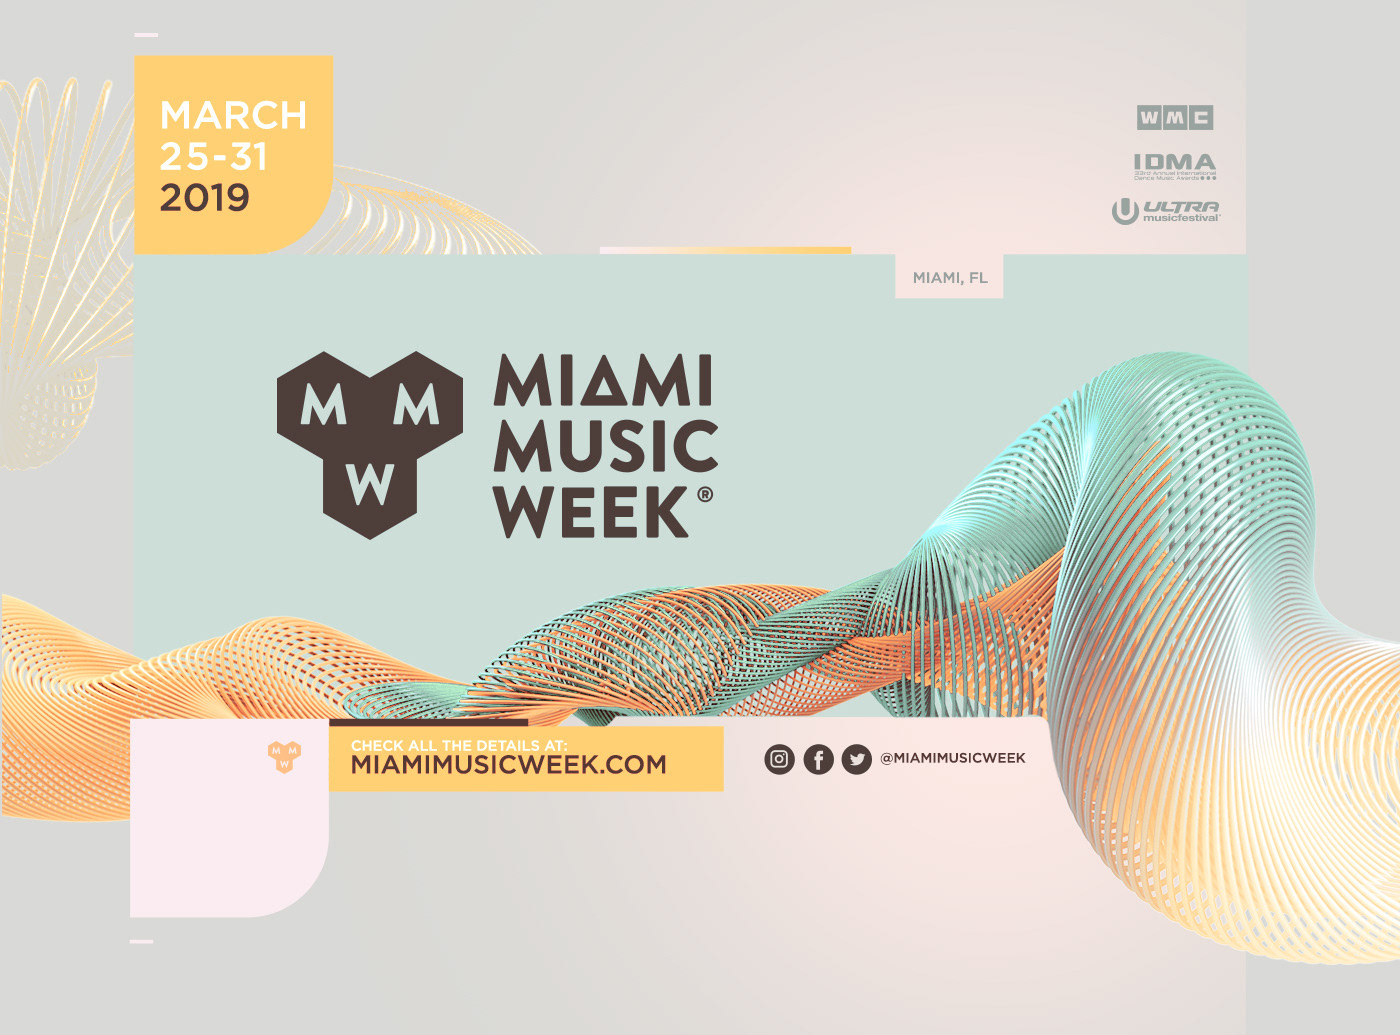 Miami Music Projects Photos Videos Logos Illustrations And Branding On Behance